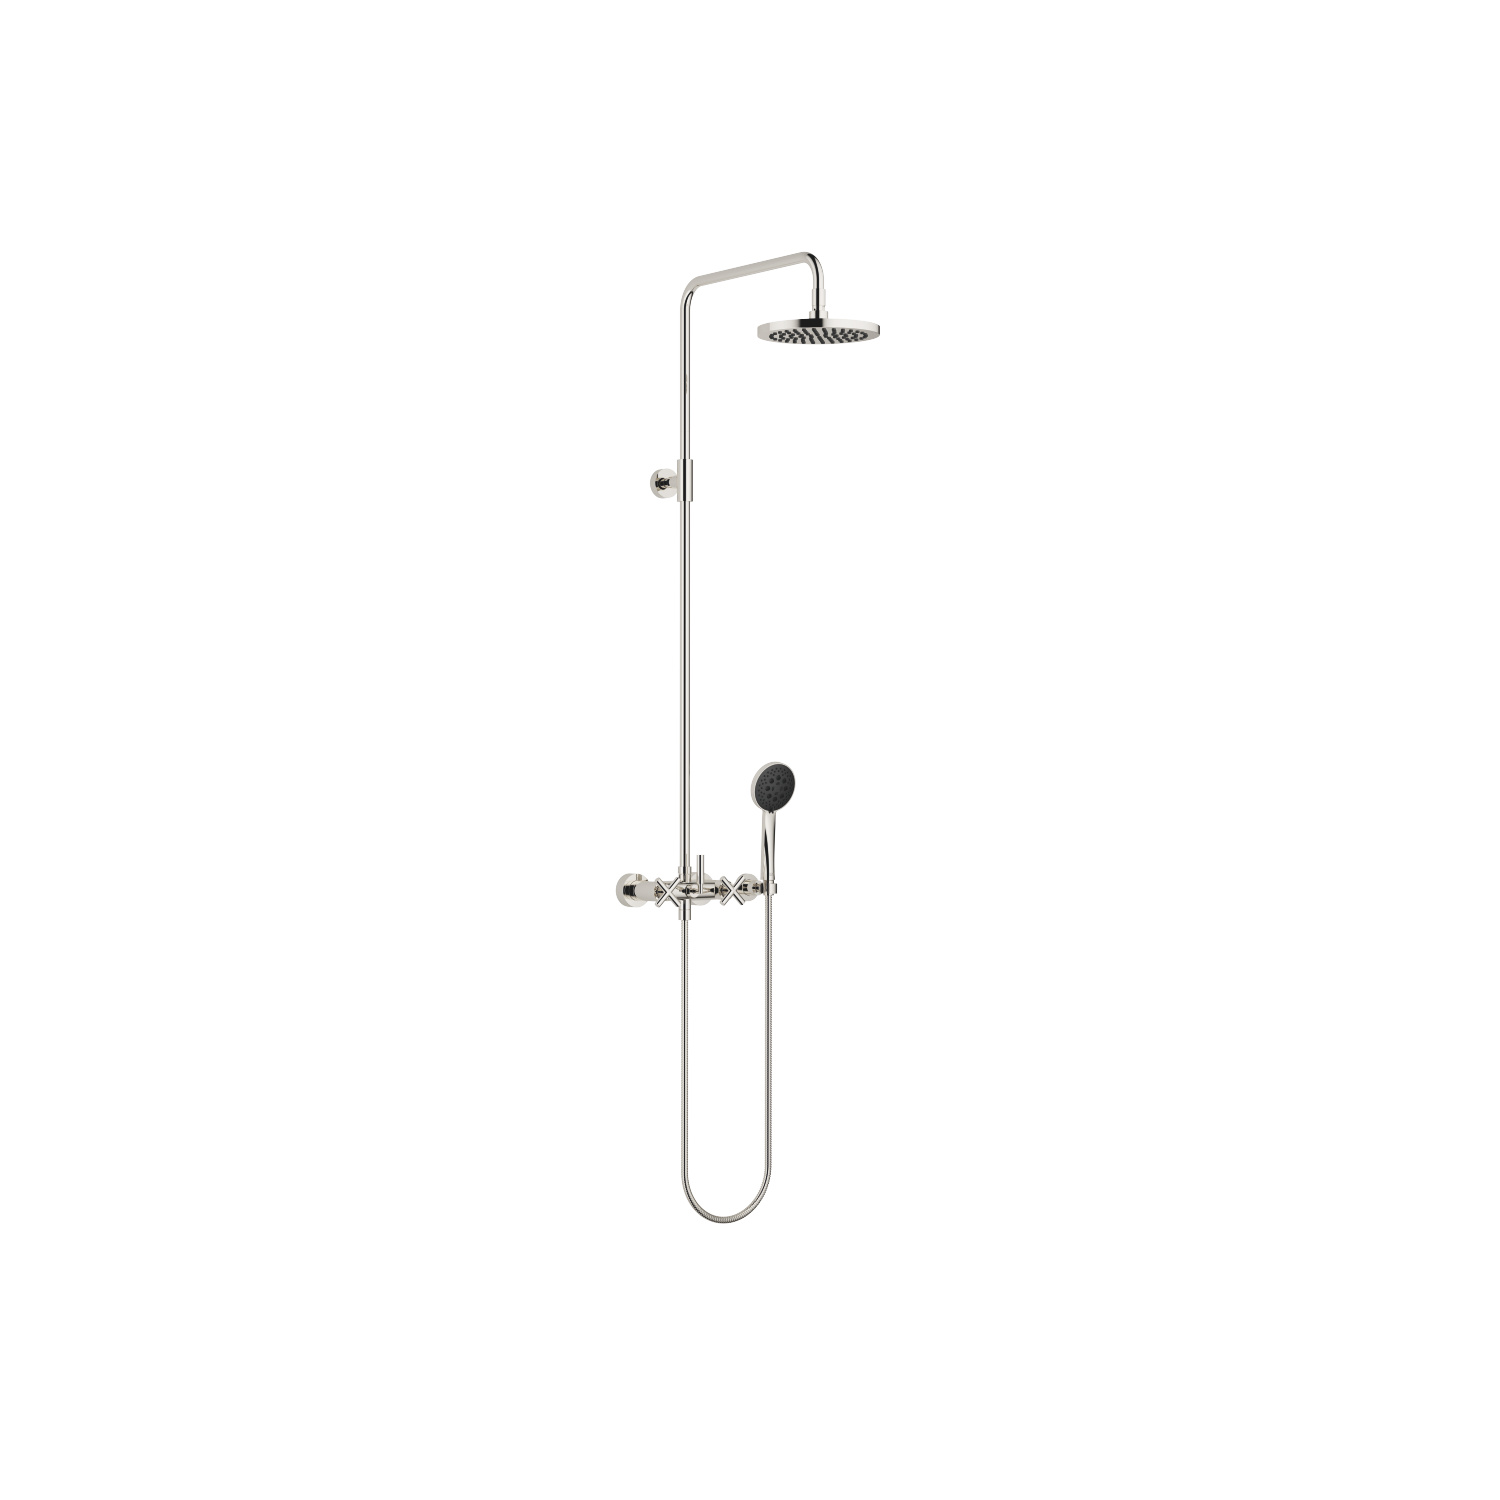 Shower mixer for wall mounting with fixed and hand shower - platinum